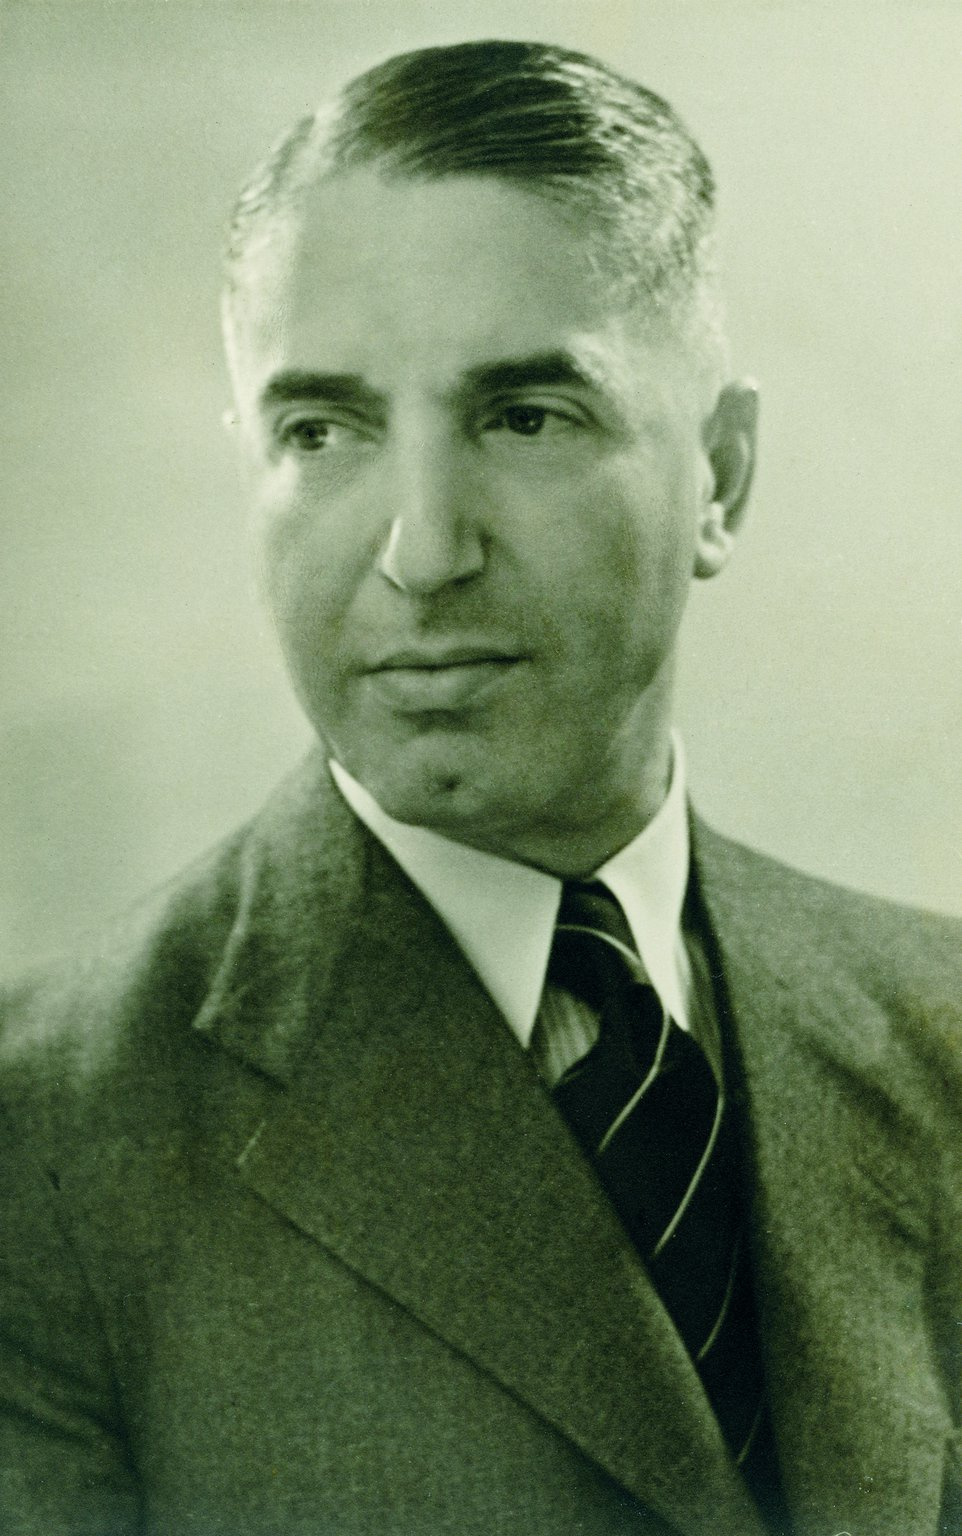 Fritz Pfeffer, around 1937.